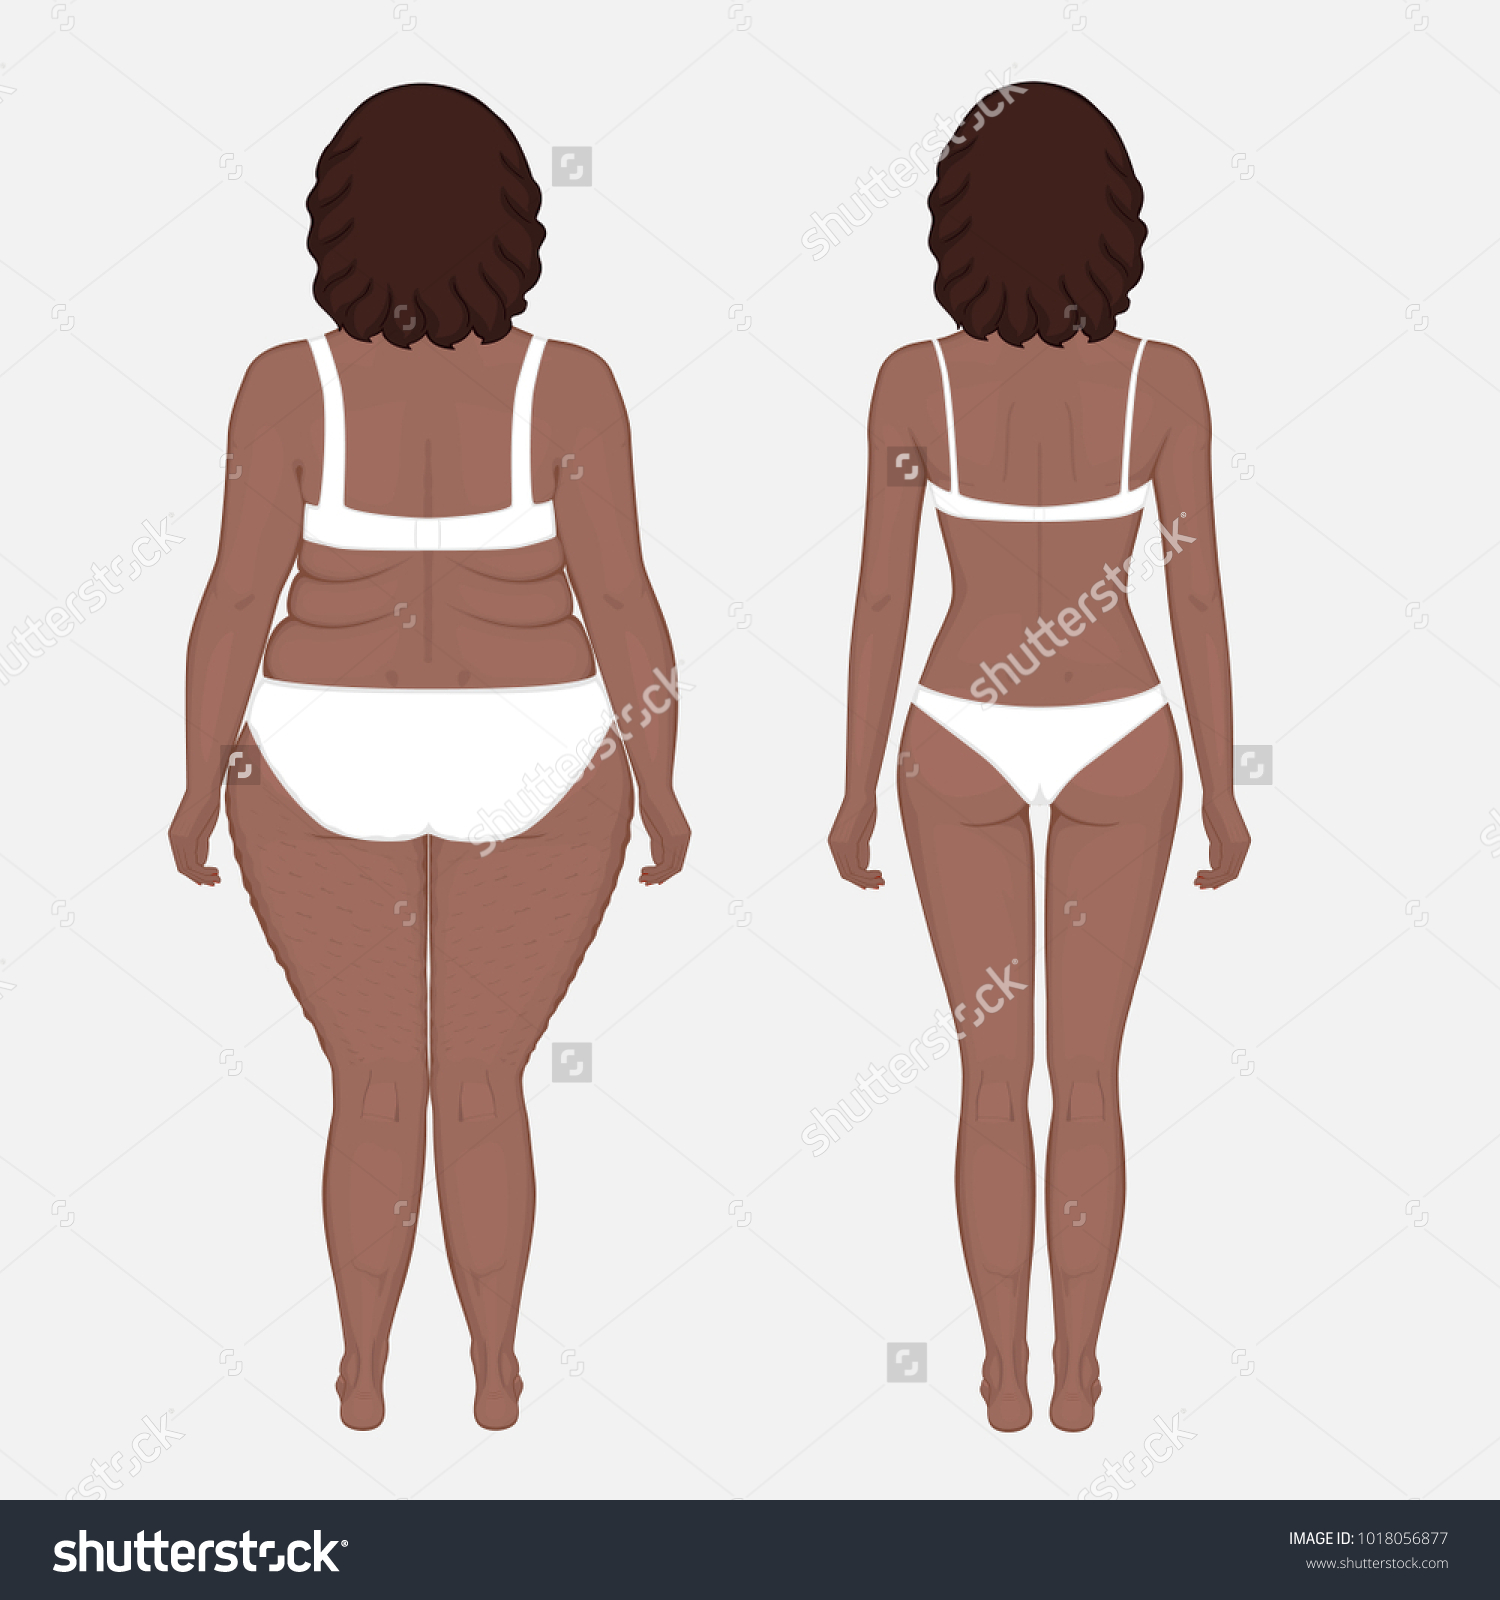 Should i lift weights if i want to lose fat image 9